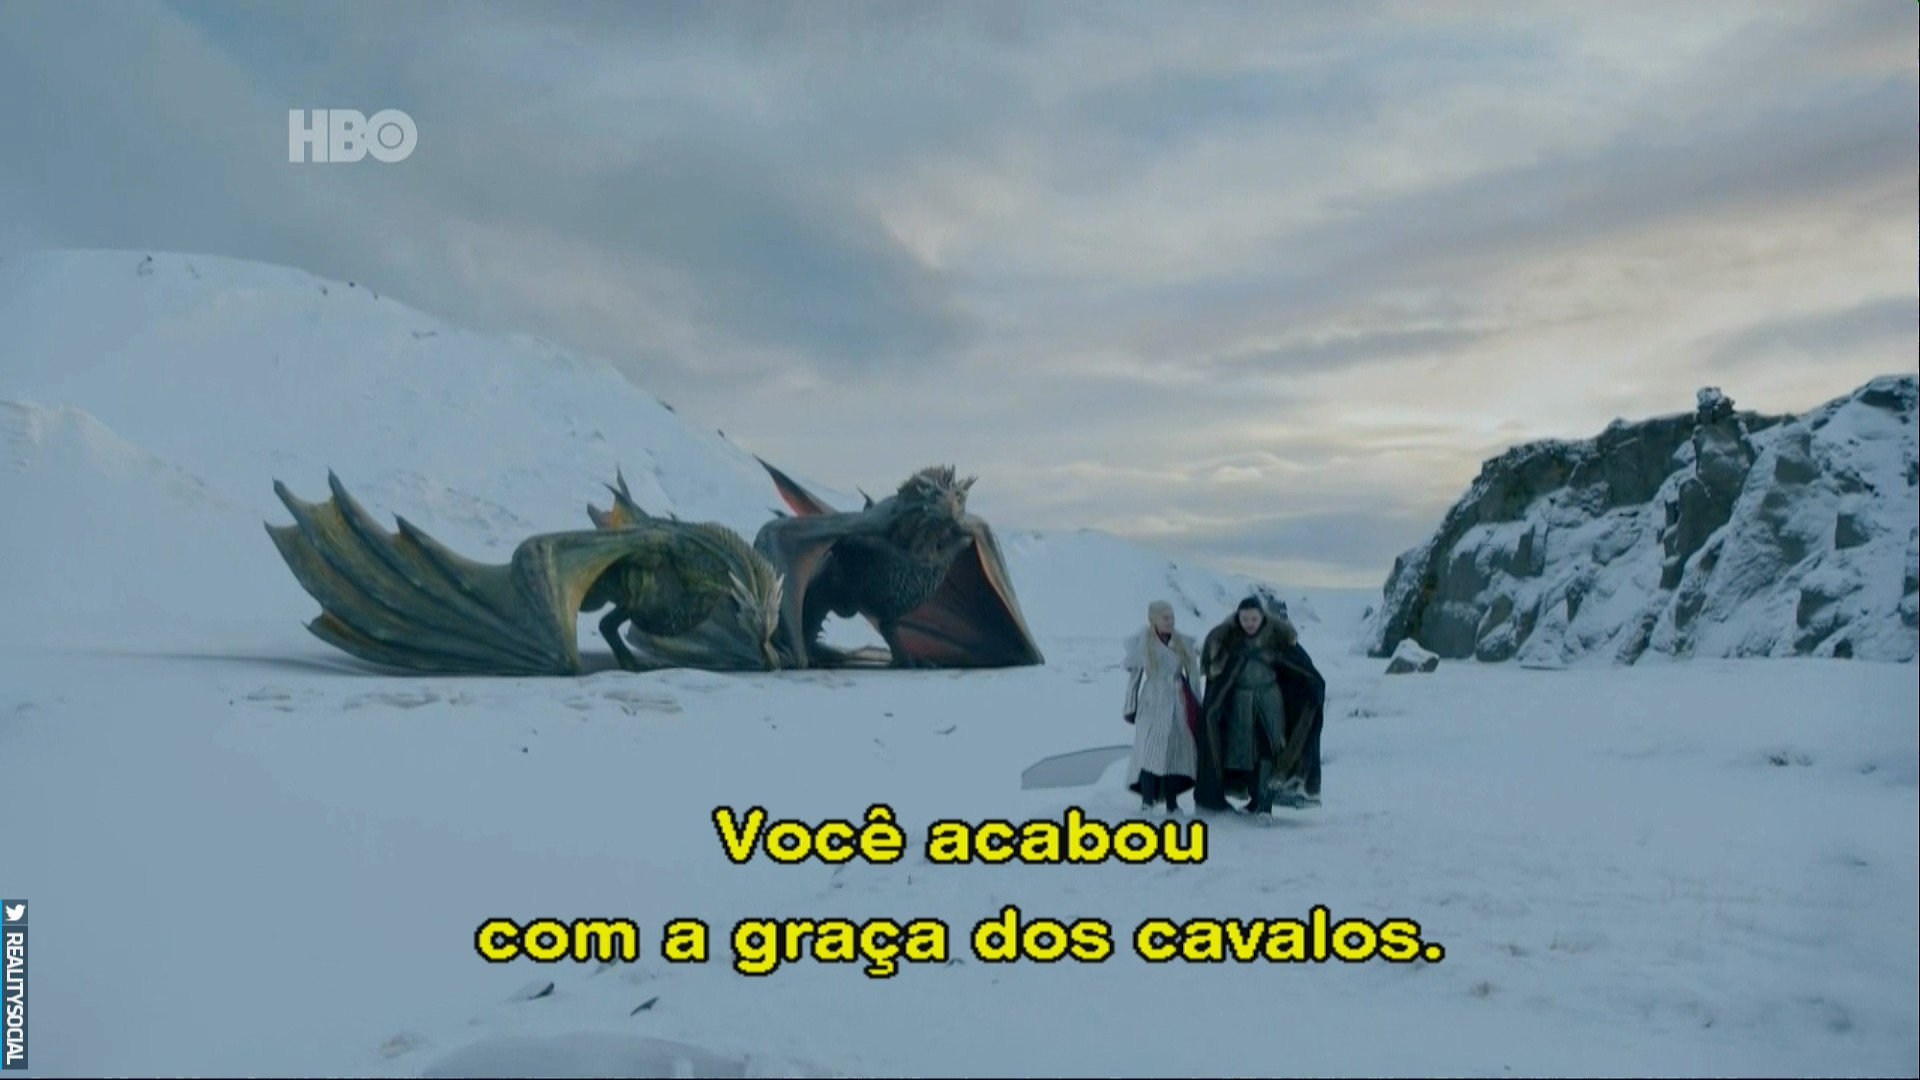 O que aconteceu no primeiro episódio da 8ª temporada de Game of Thrones? 7